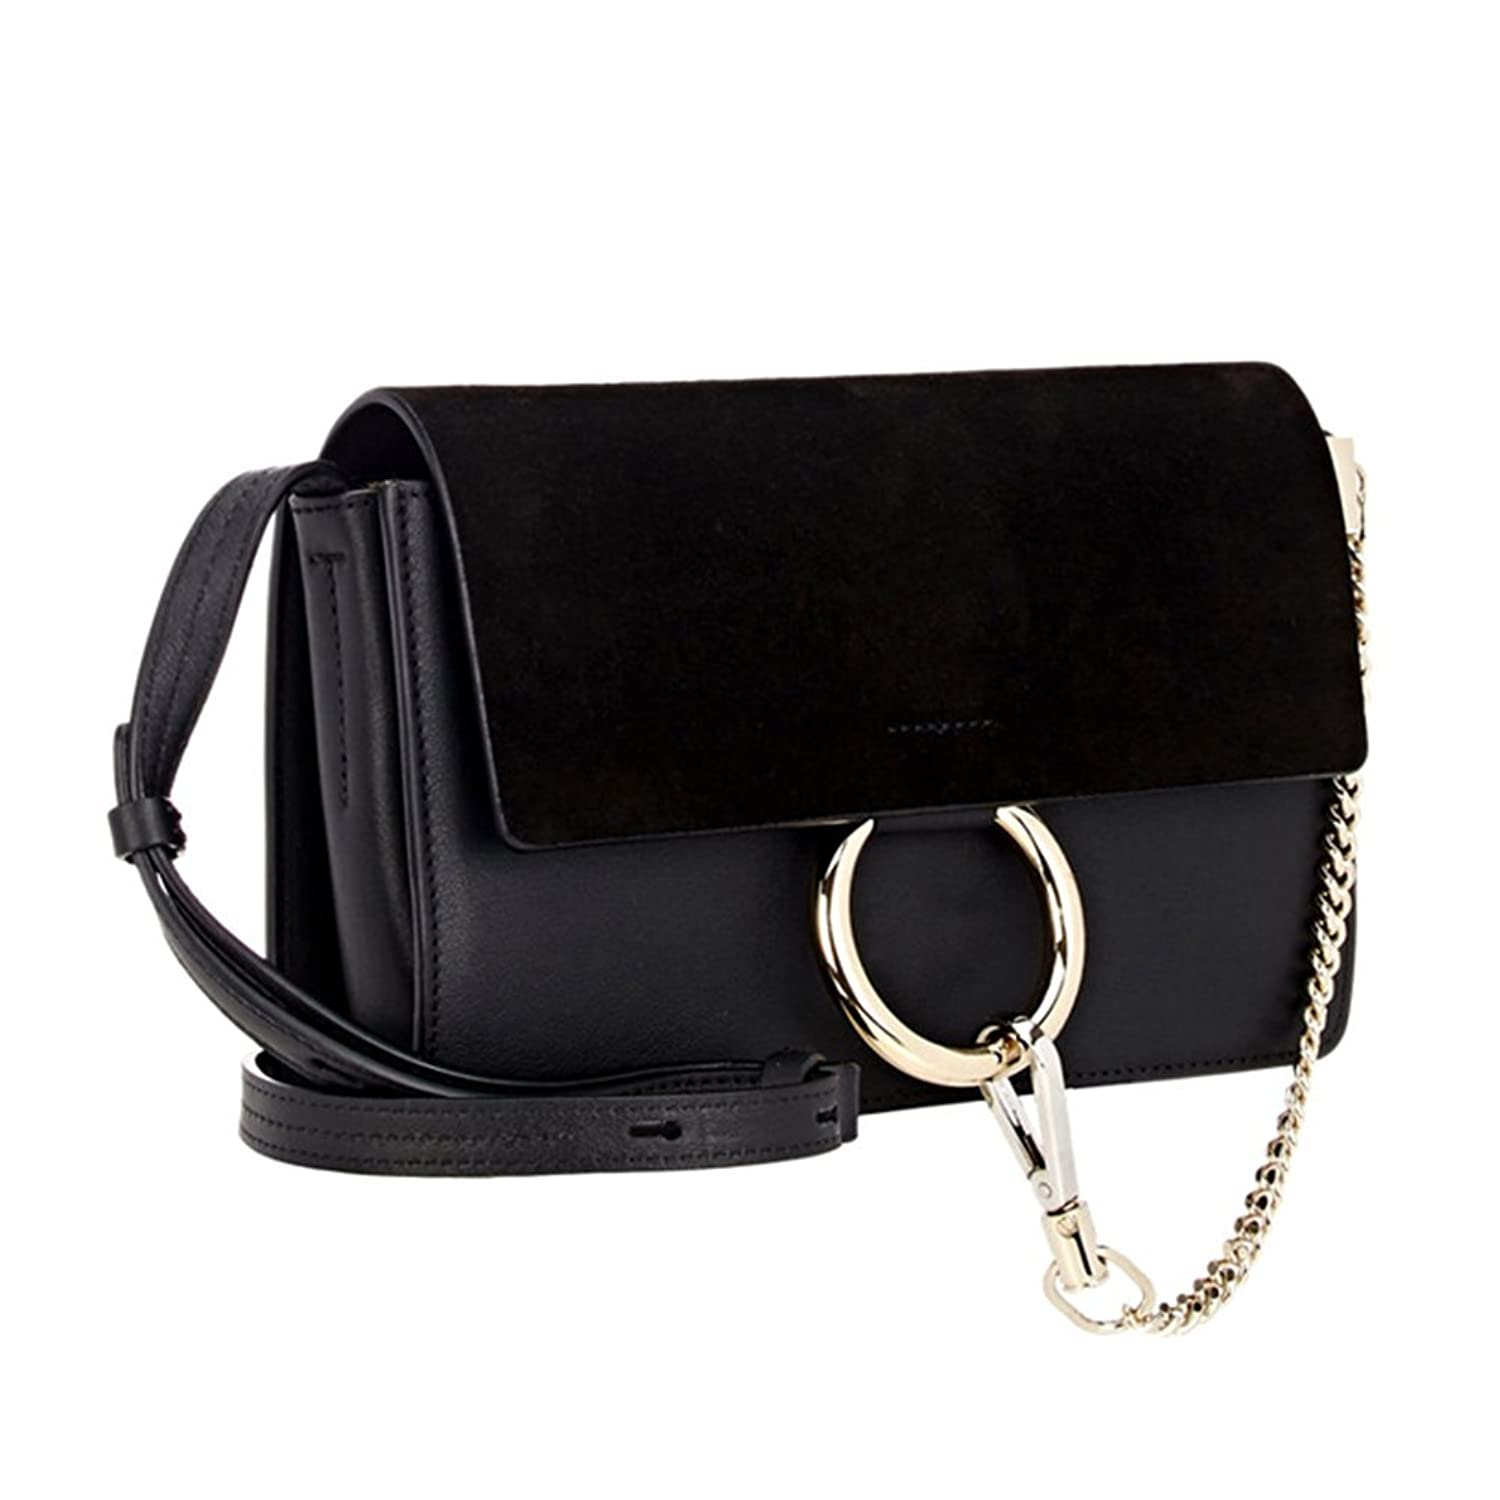 Actlure Genuine Leather Crossbody Shoulder Bag Purse Chain link ...